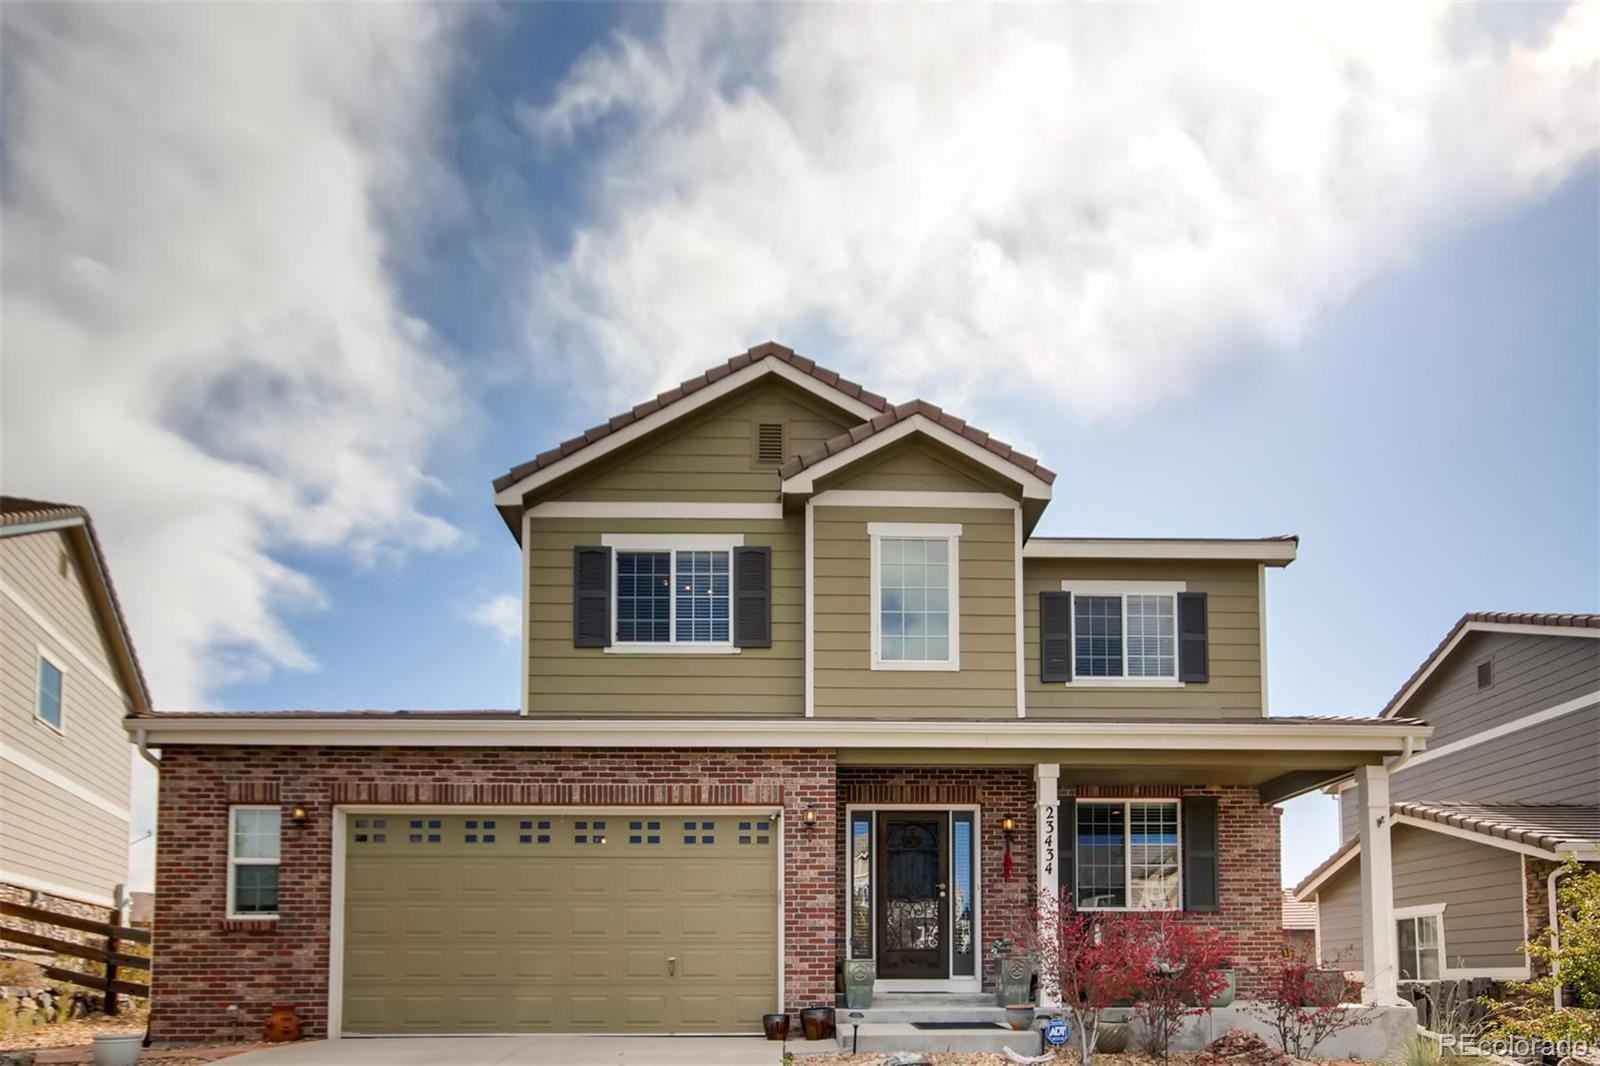 MLS# 9982996 - 2 - 23434 E Ontario Place, Aurora, CO 80016